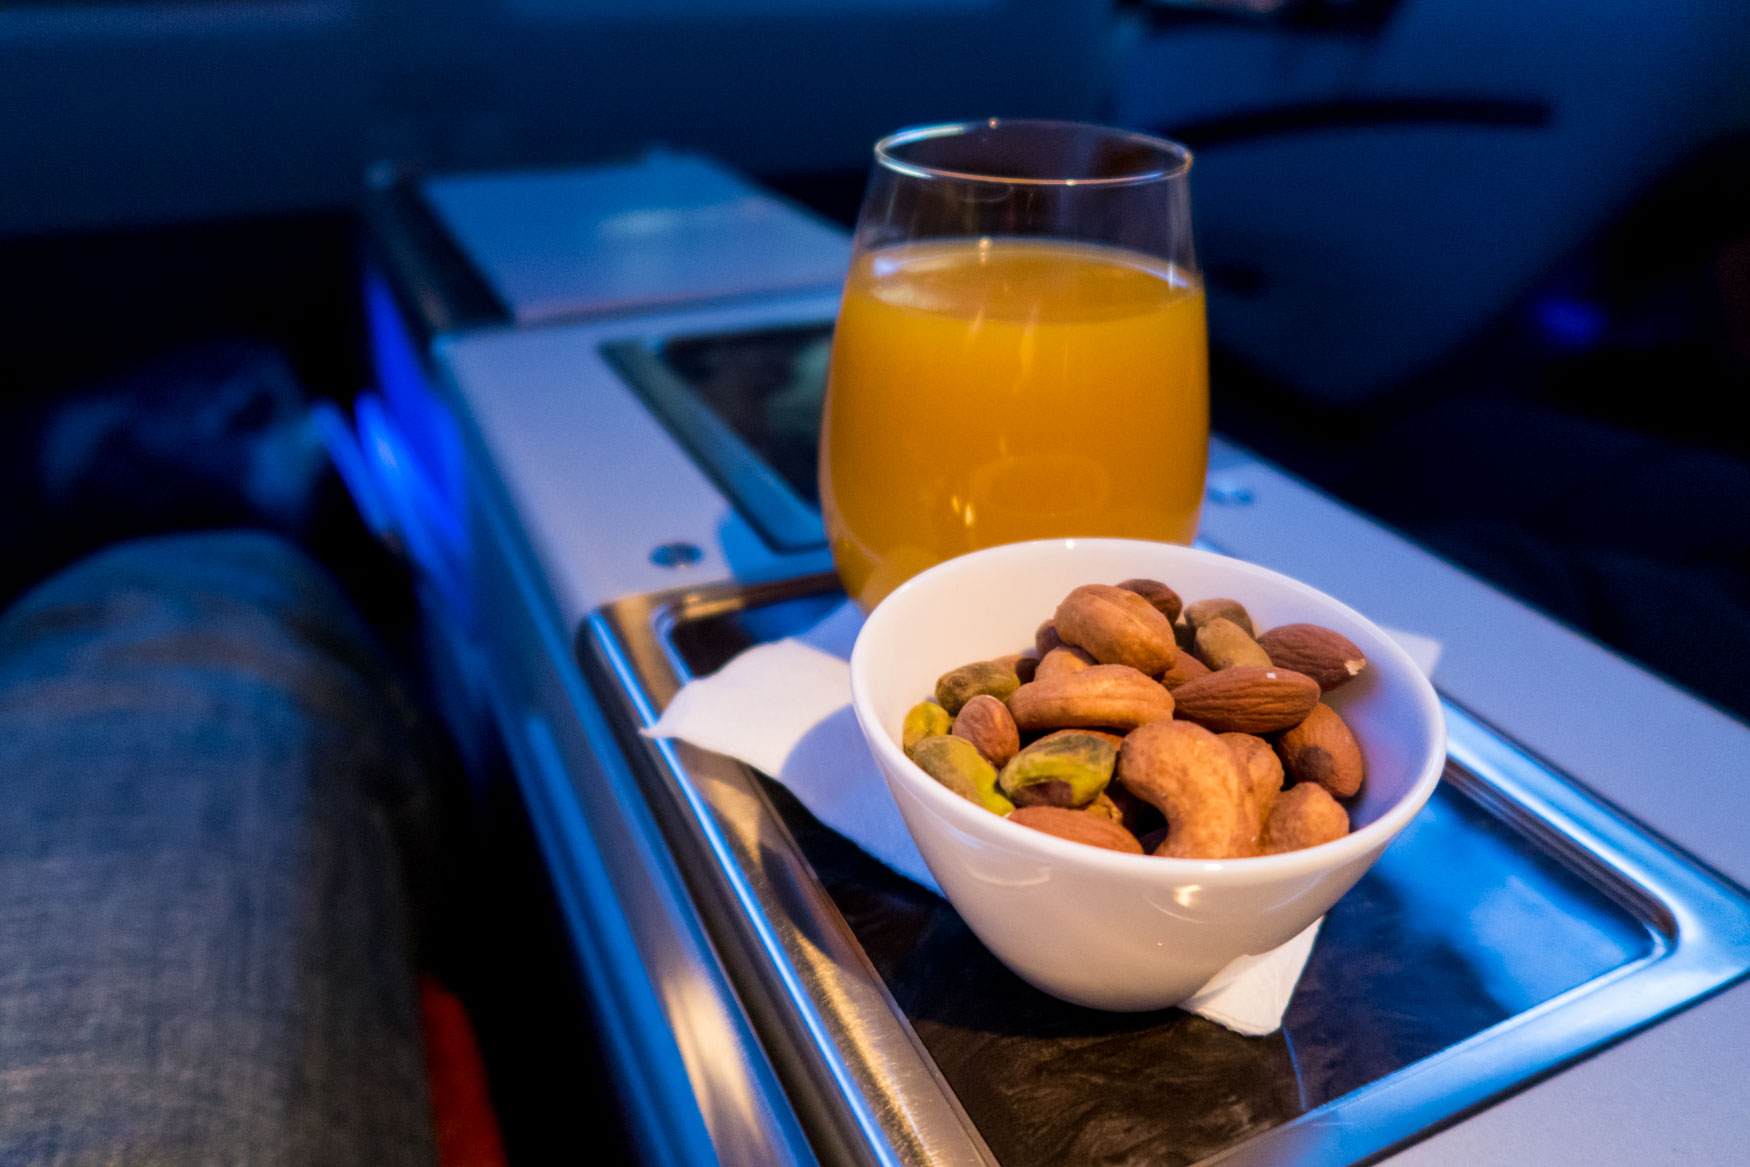 Nuts and Mango Juice Onboard Qatar Airways